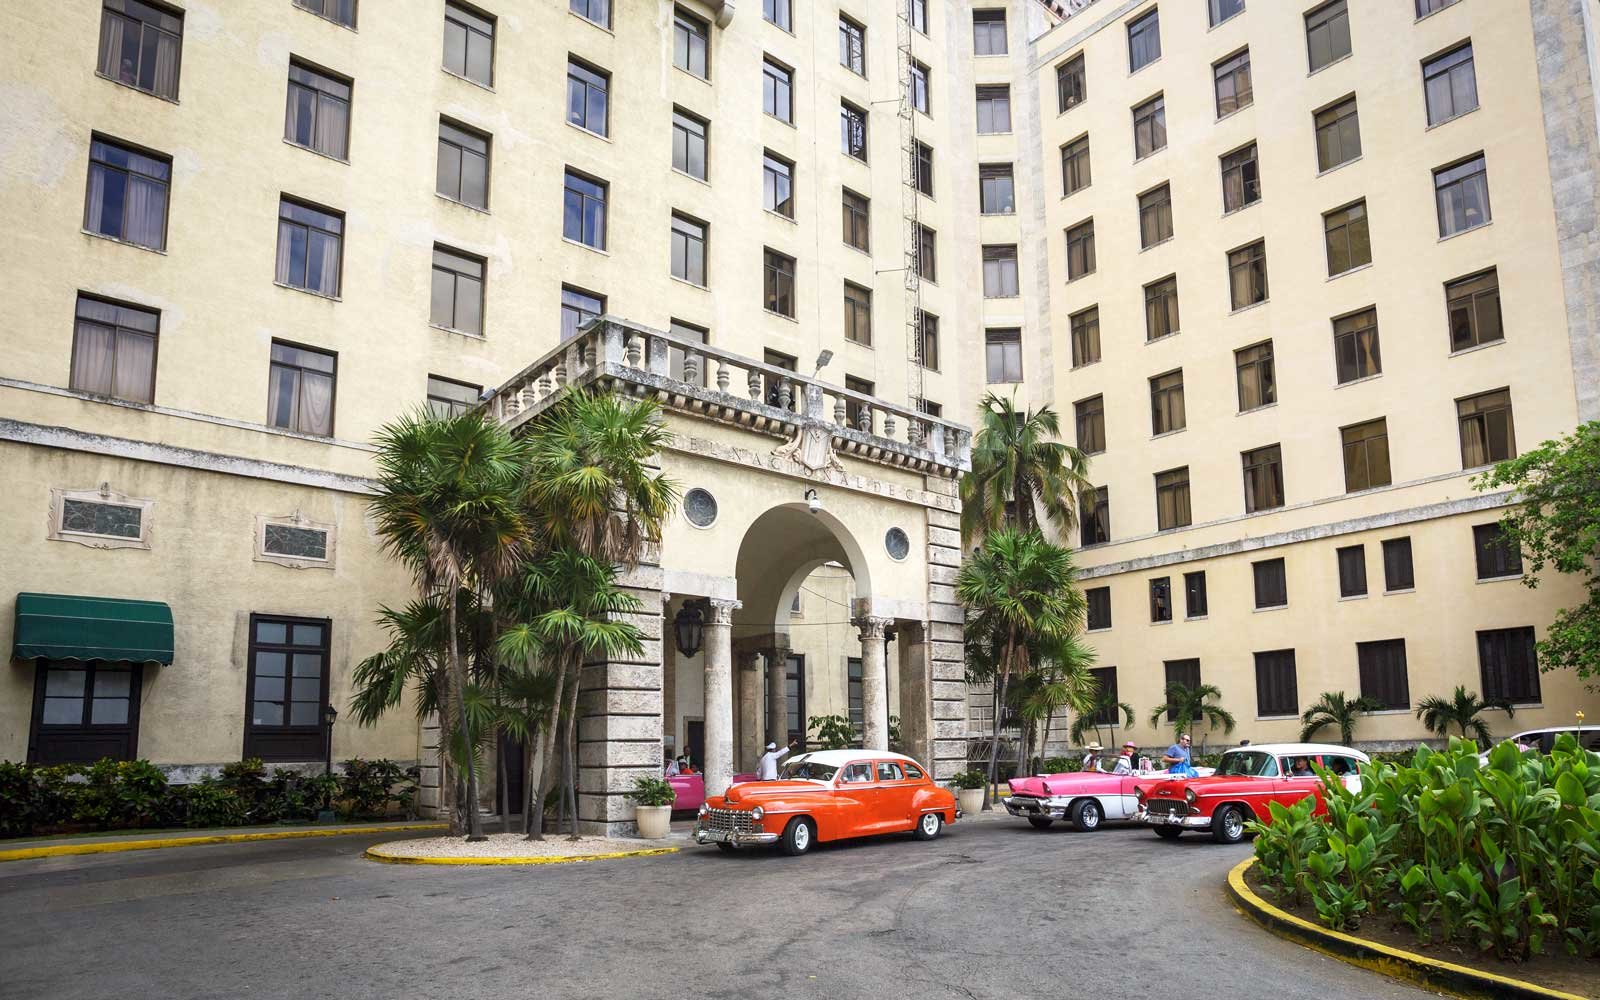 Colorful cars in front of the Hotel Nacional de Cuba